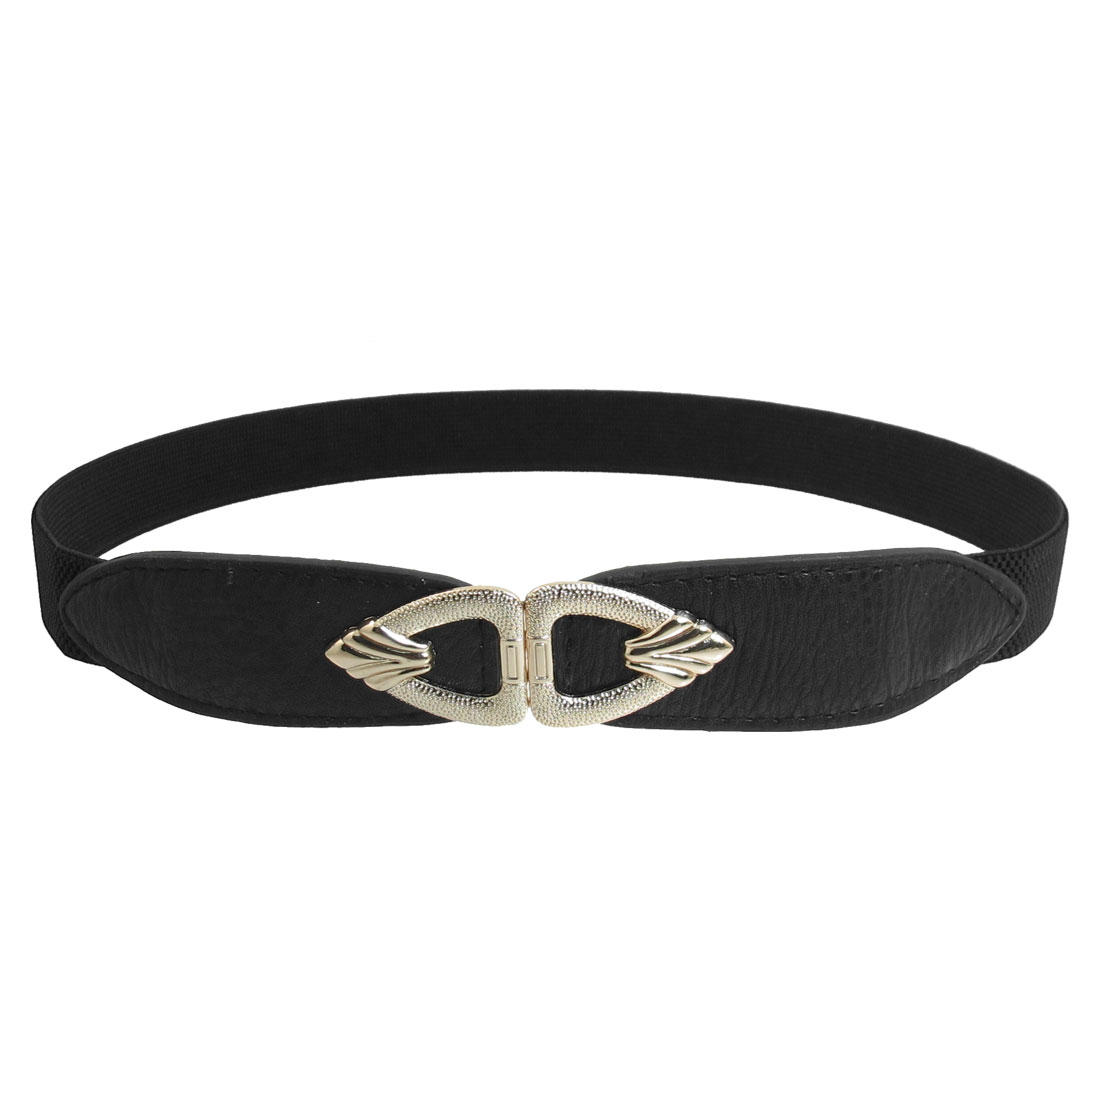 Gold Tone Interlock Buckle 2.5cm Wide Elastic Thin Waistband Belt Black for Lady